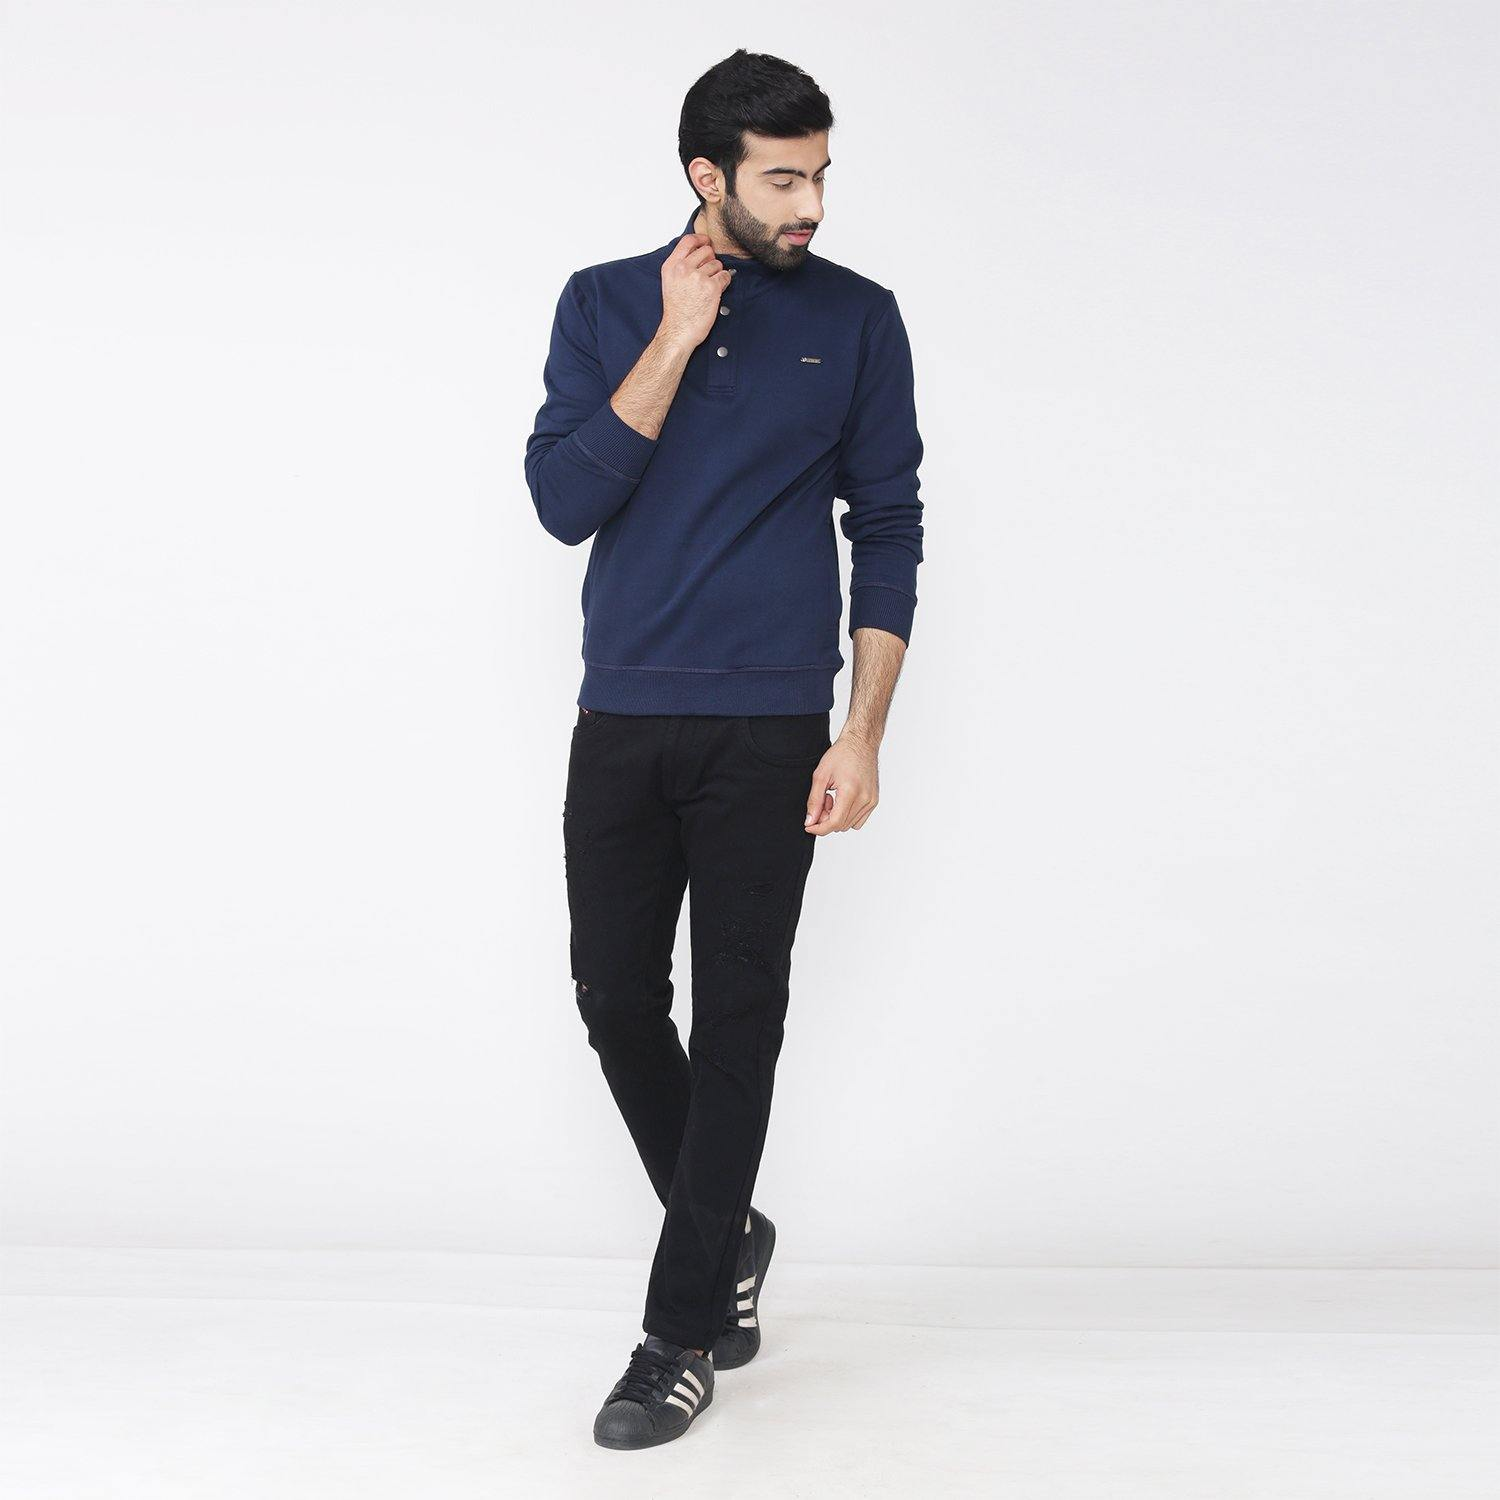 Men's Winter Wear Stylish Sweatshirt - Navy